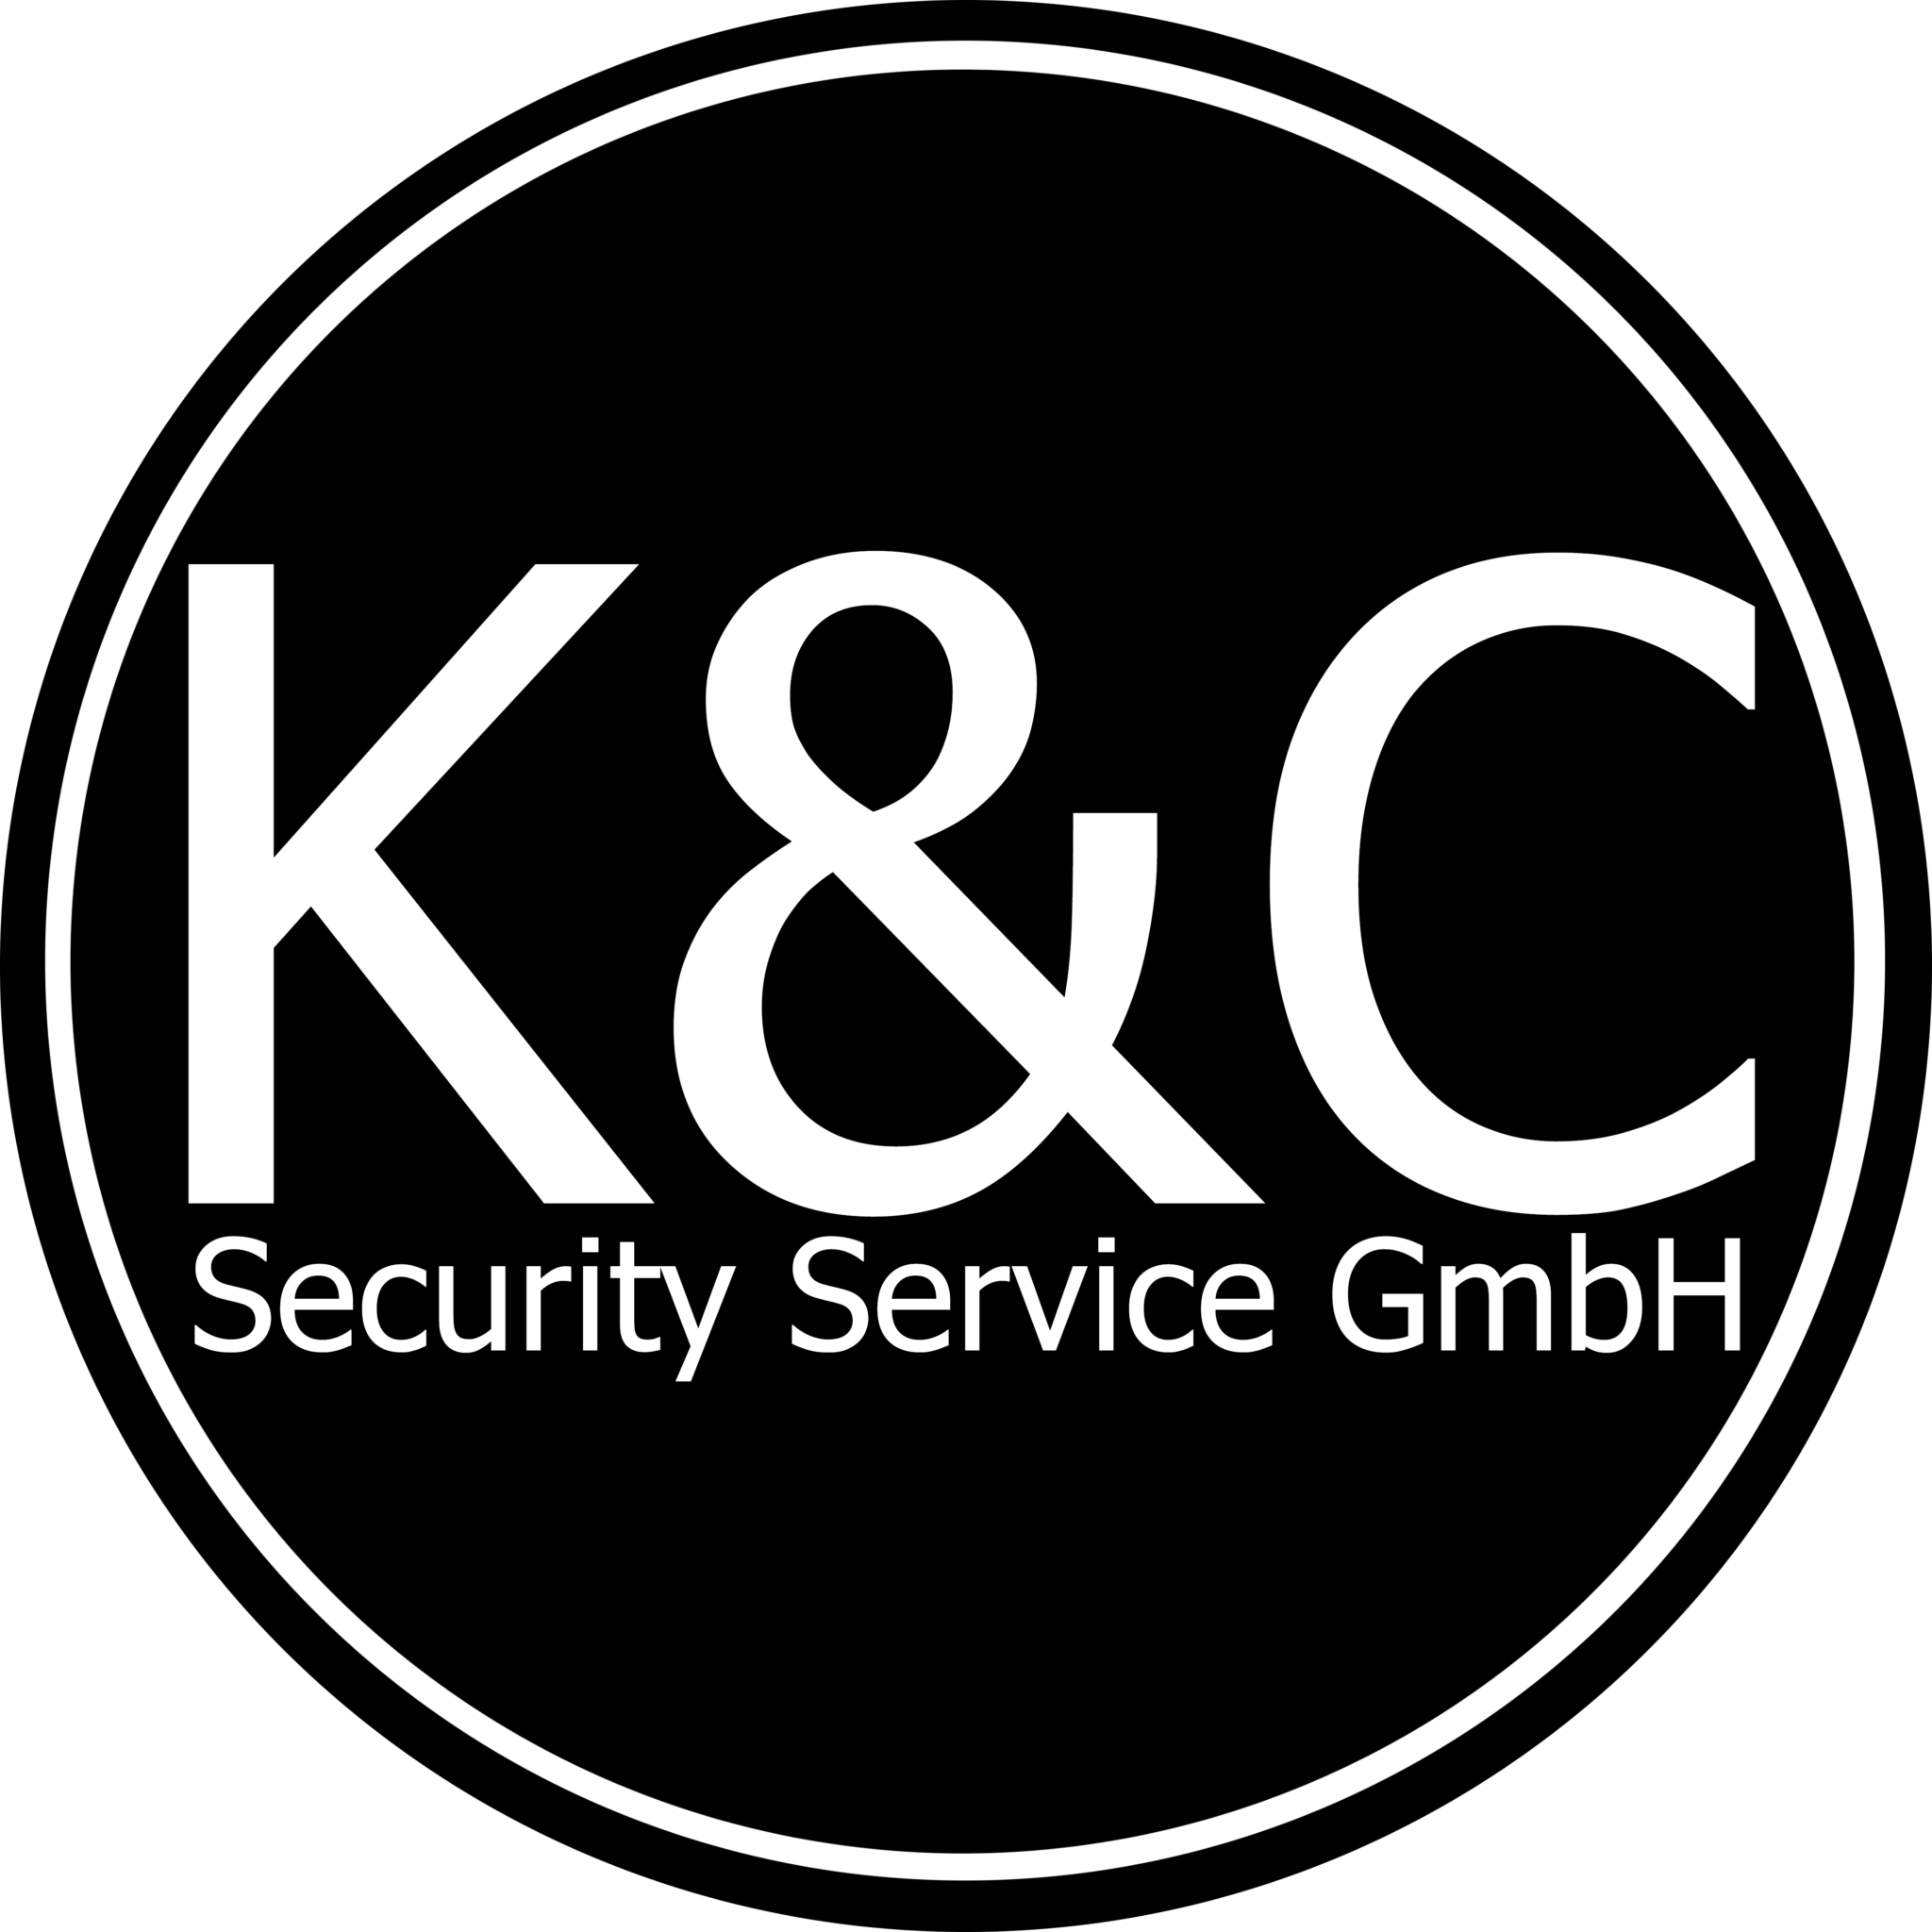 K&C Security Service GmbH